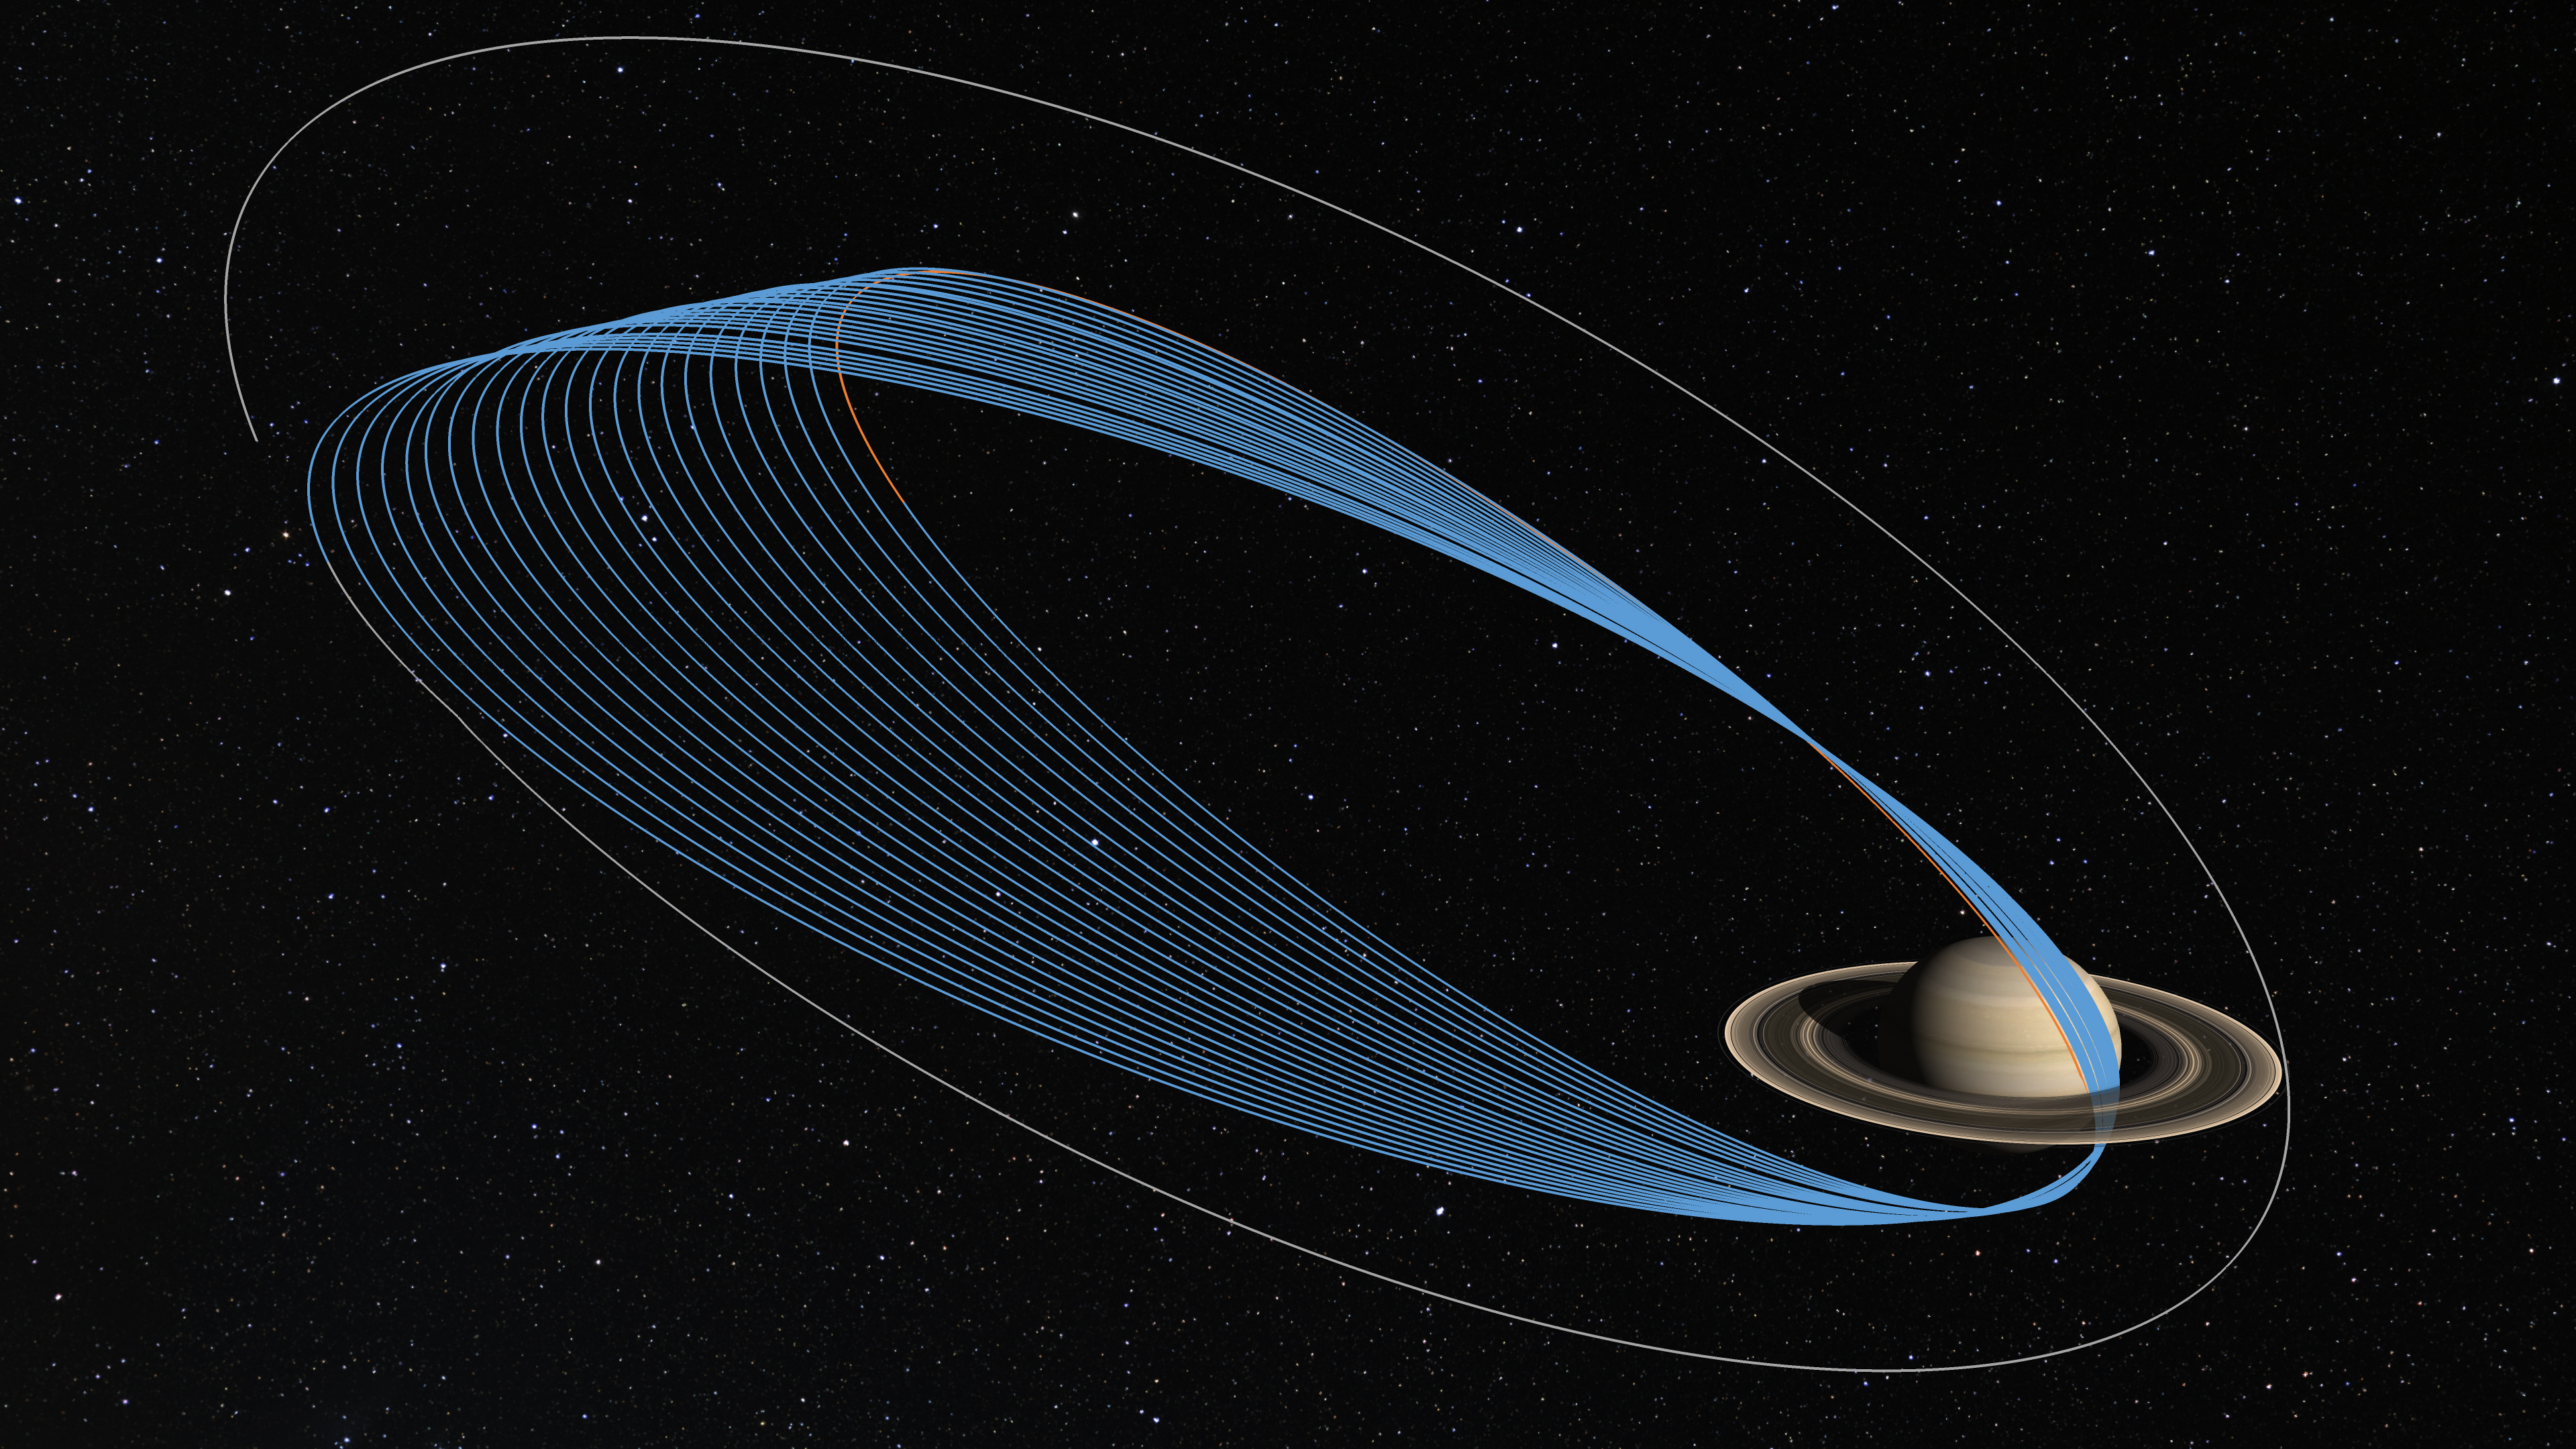 Illustration showing Cassini's final orbits.